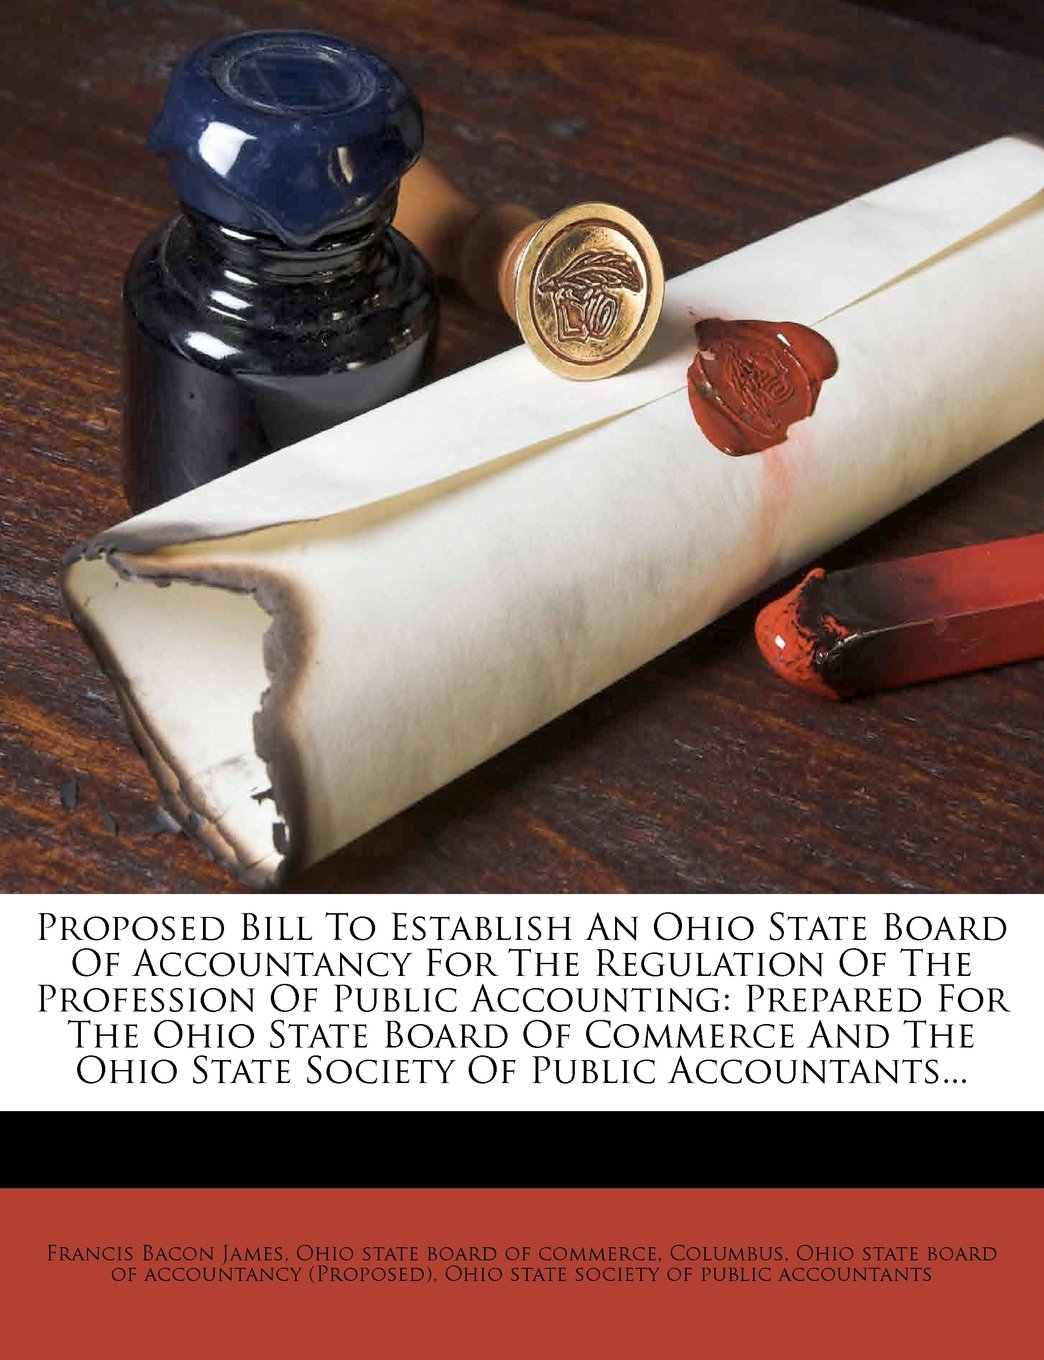 Download Proposed Bill To Establish An Ohio State Board Of Accountancy For The Regulation Of The Profession Of Public Accounting: Prepared For The Ohio State ... Ohio State Society Of Public Accountants... pdf epub